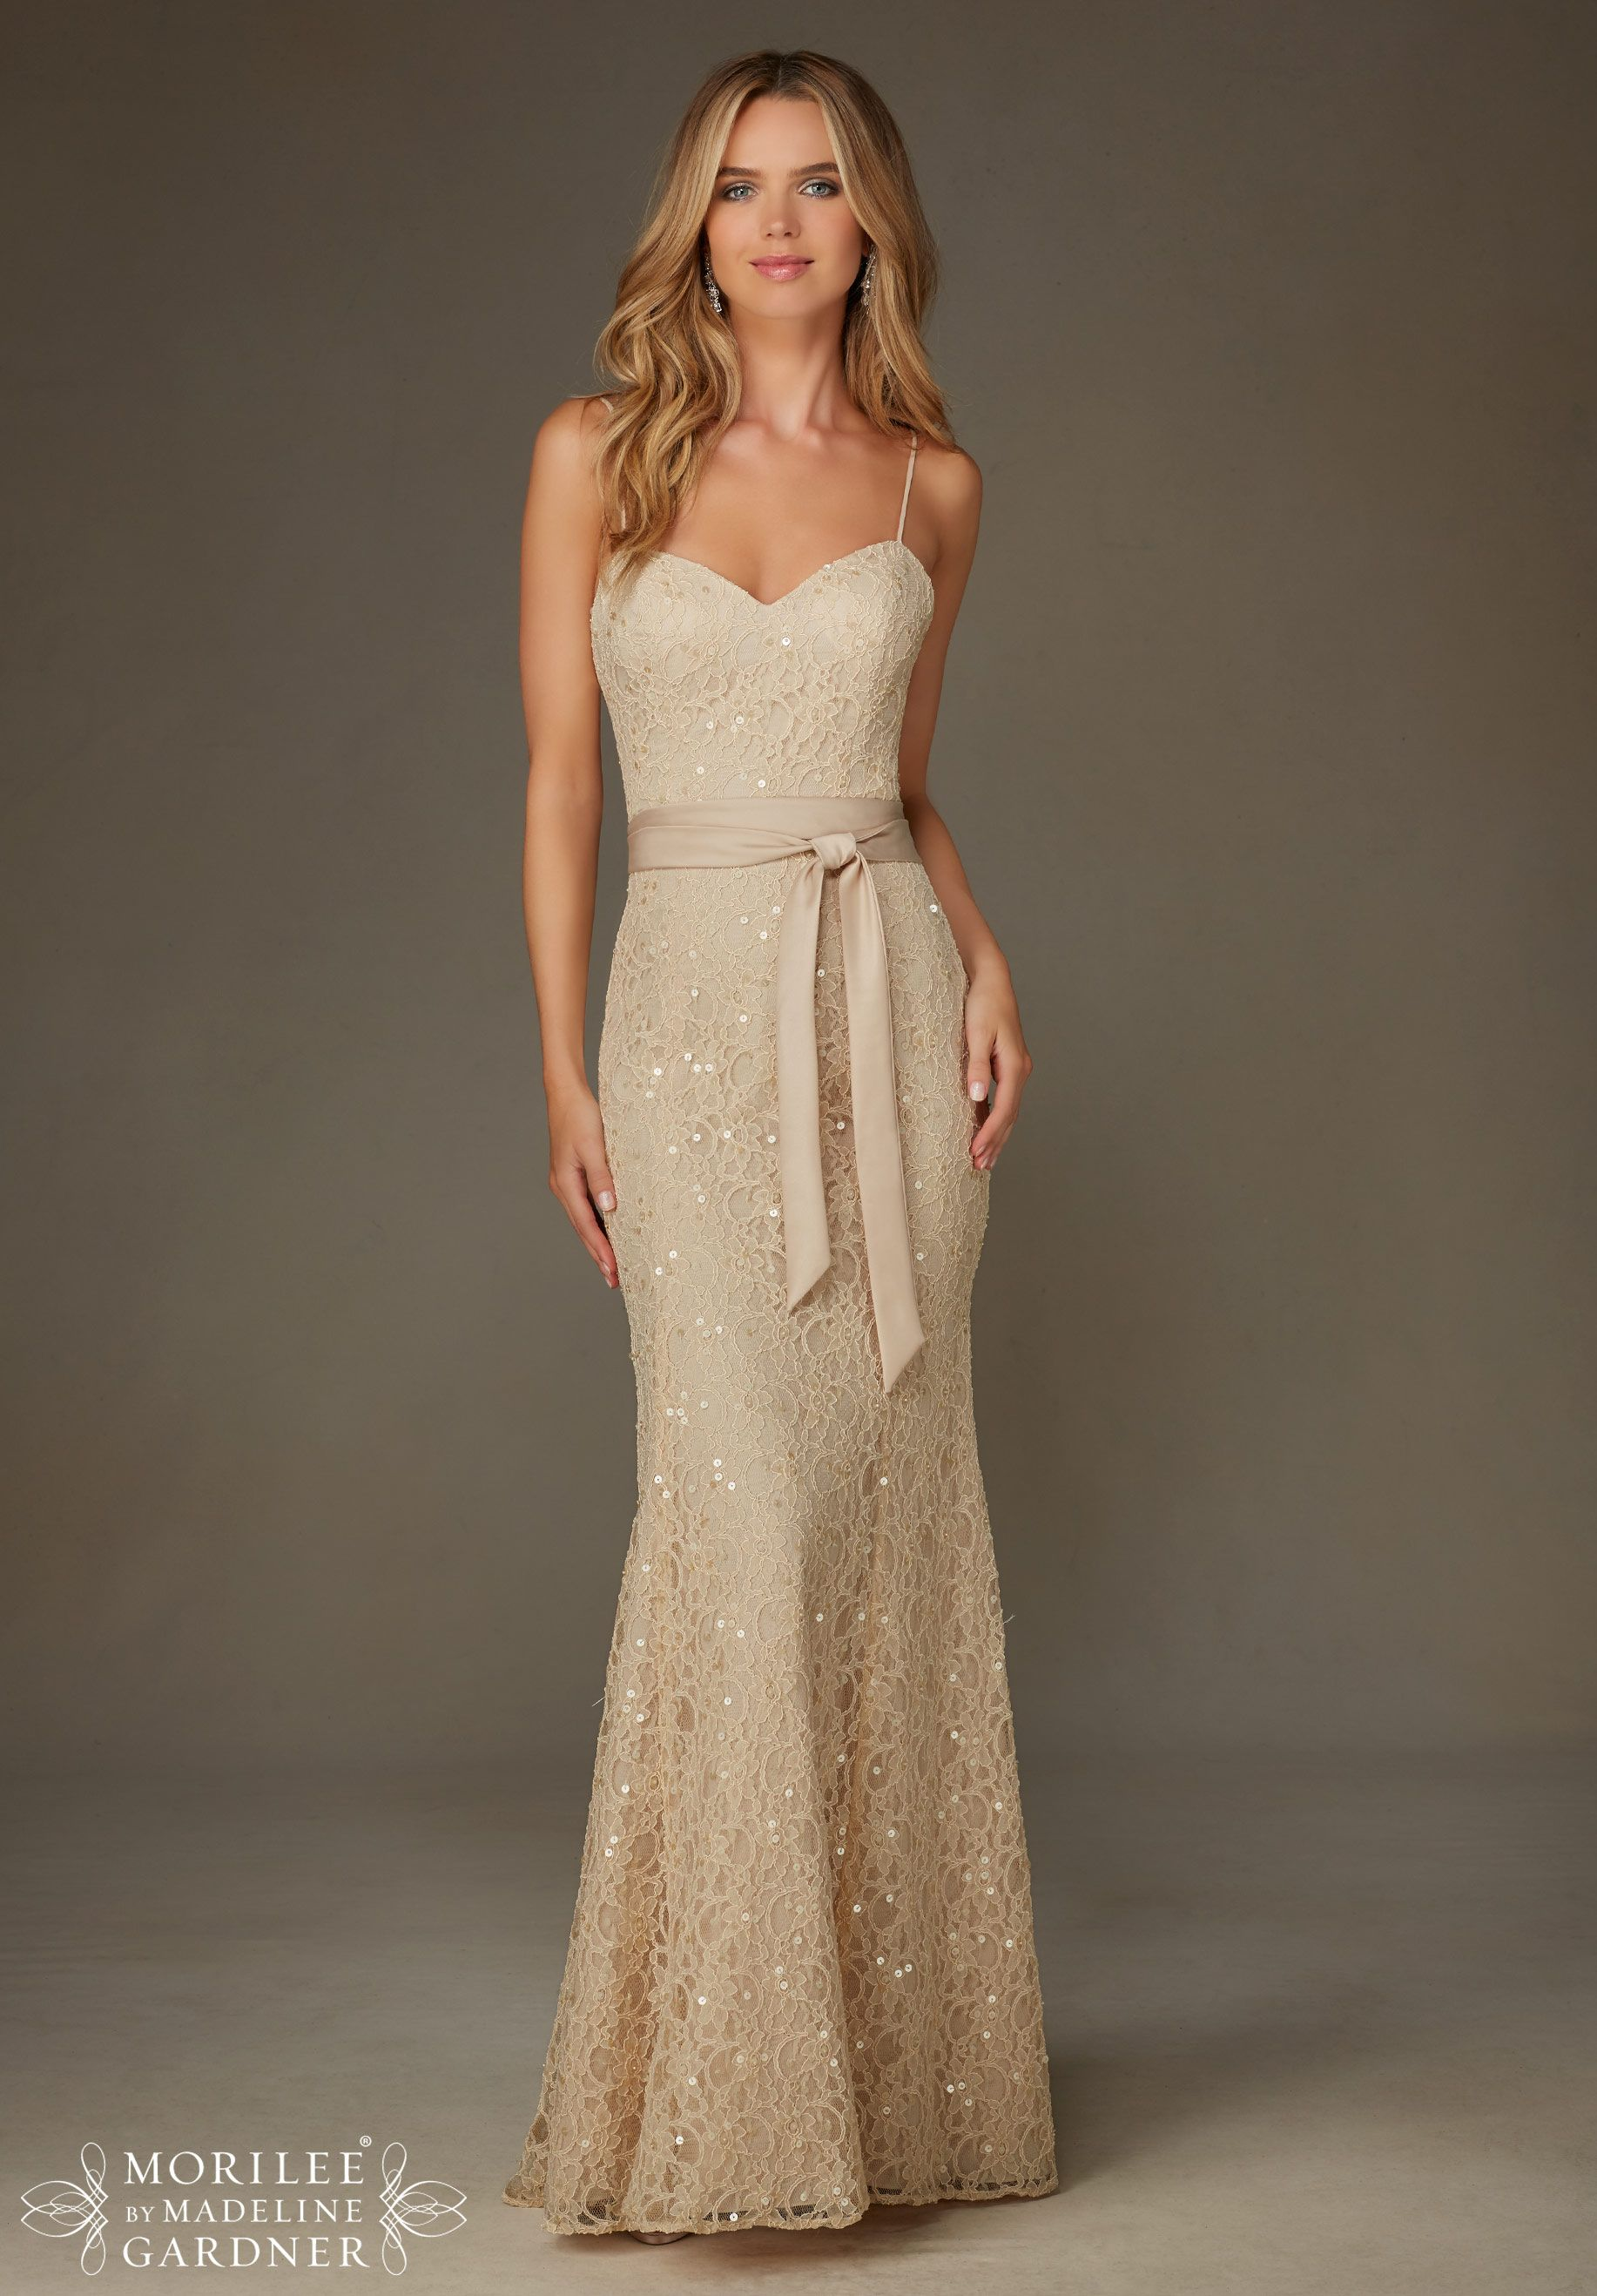 1000  images about Bridesmaids Dresses Morilee on Pinterest ...